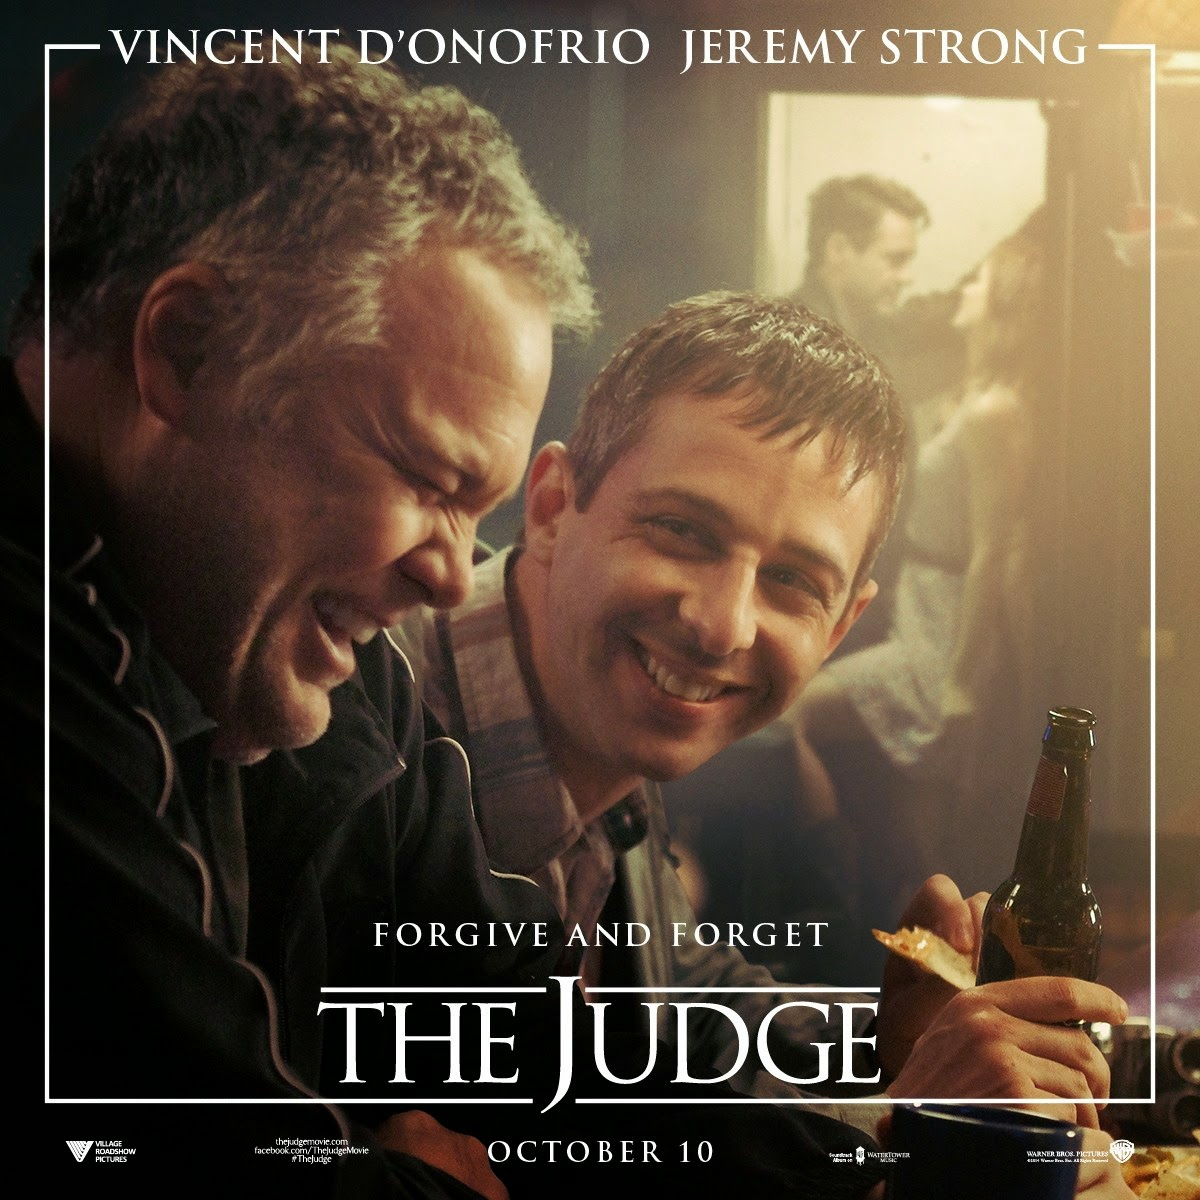 the judge-vincent donofrio-jeremy strong